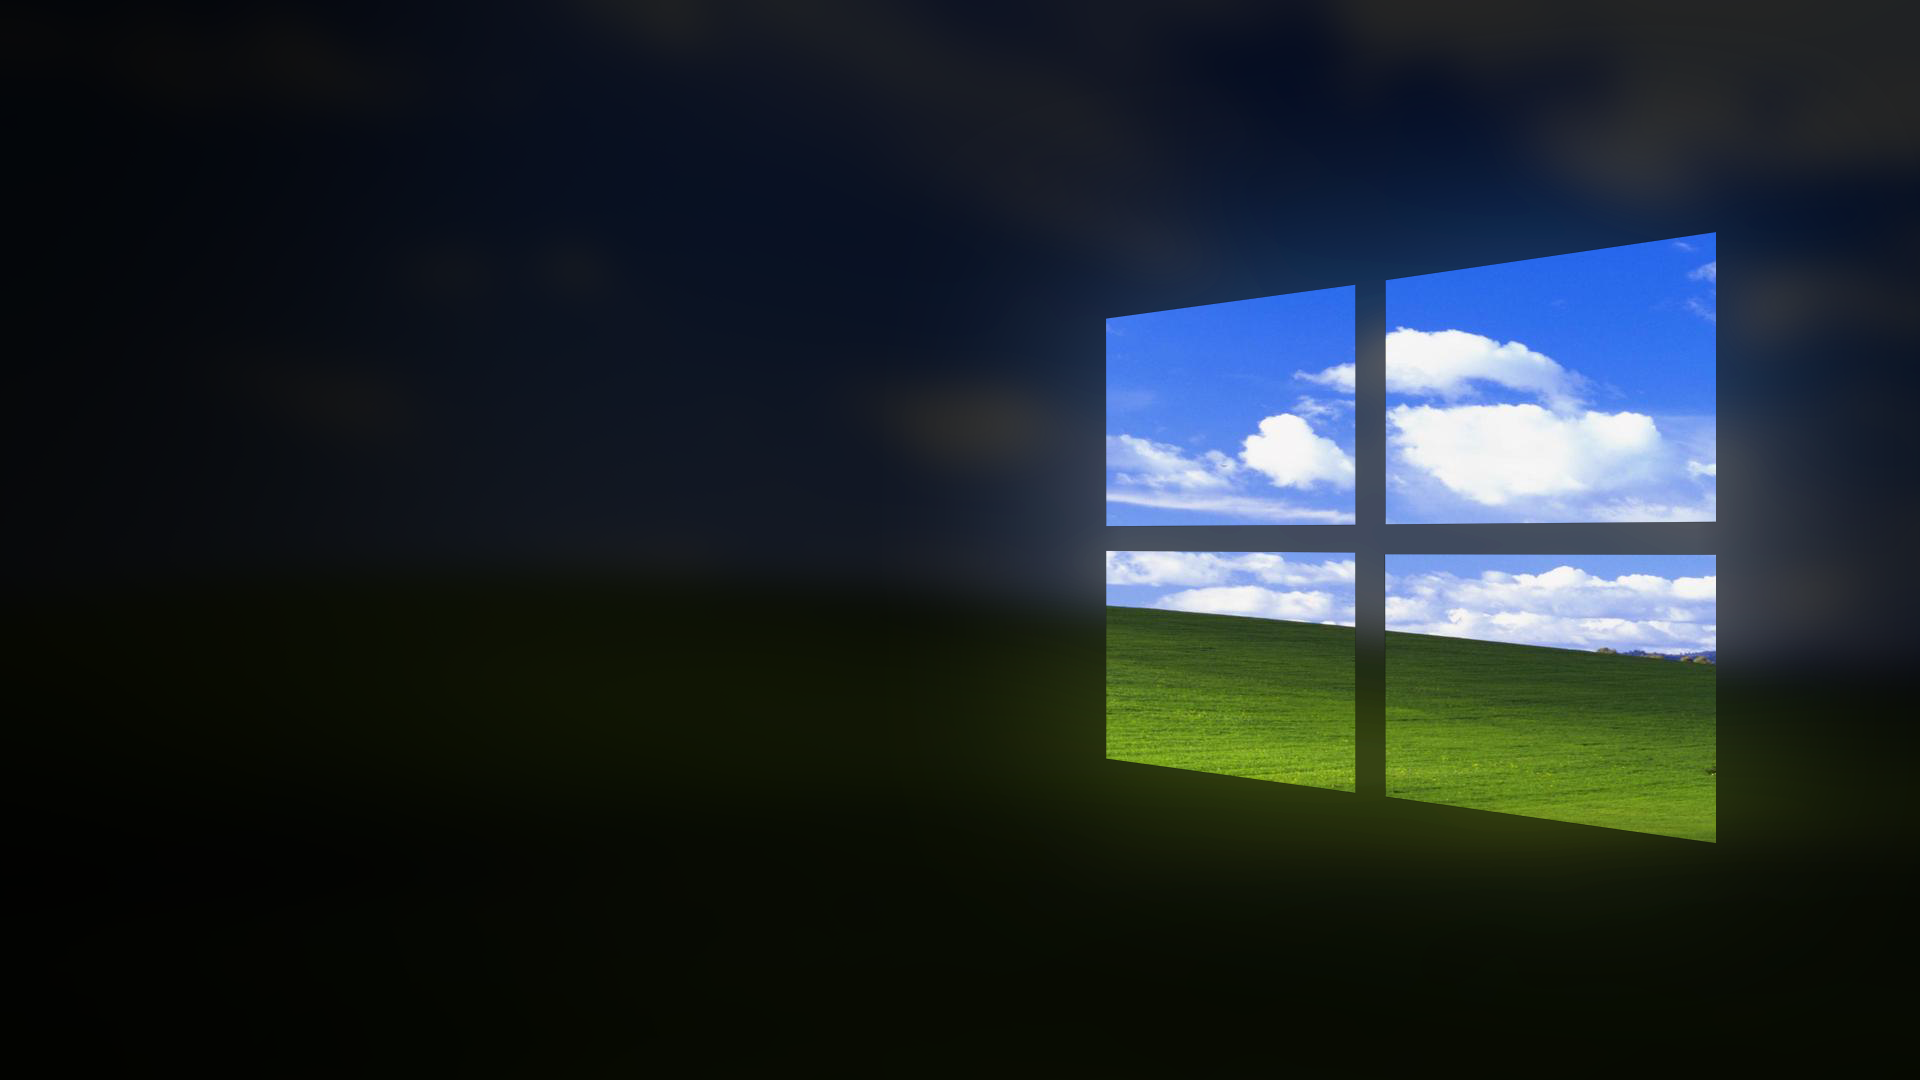 Windows Xp And 10 In 2020 Cool Desktop Wallpapers Desktop Wallpapers Backgrounds Windows 10 Desktop Backgrounds